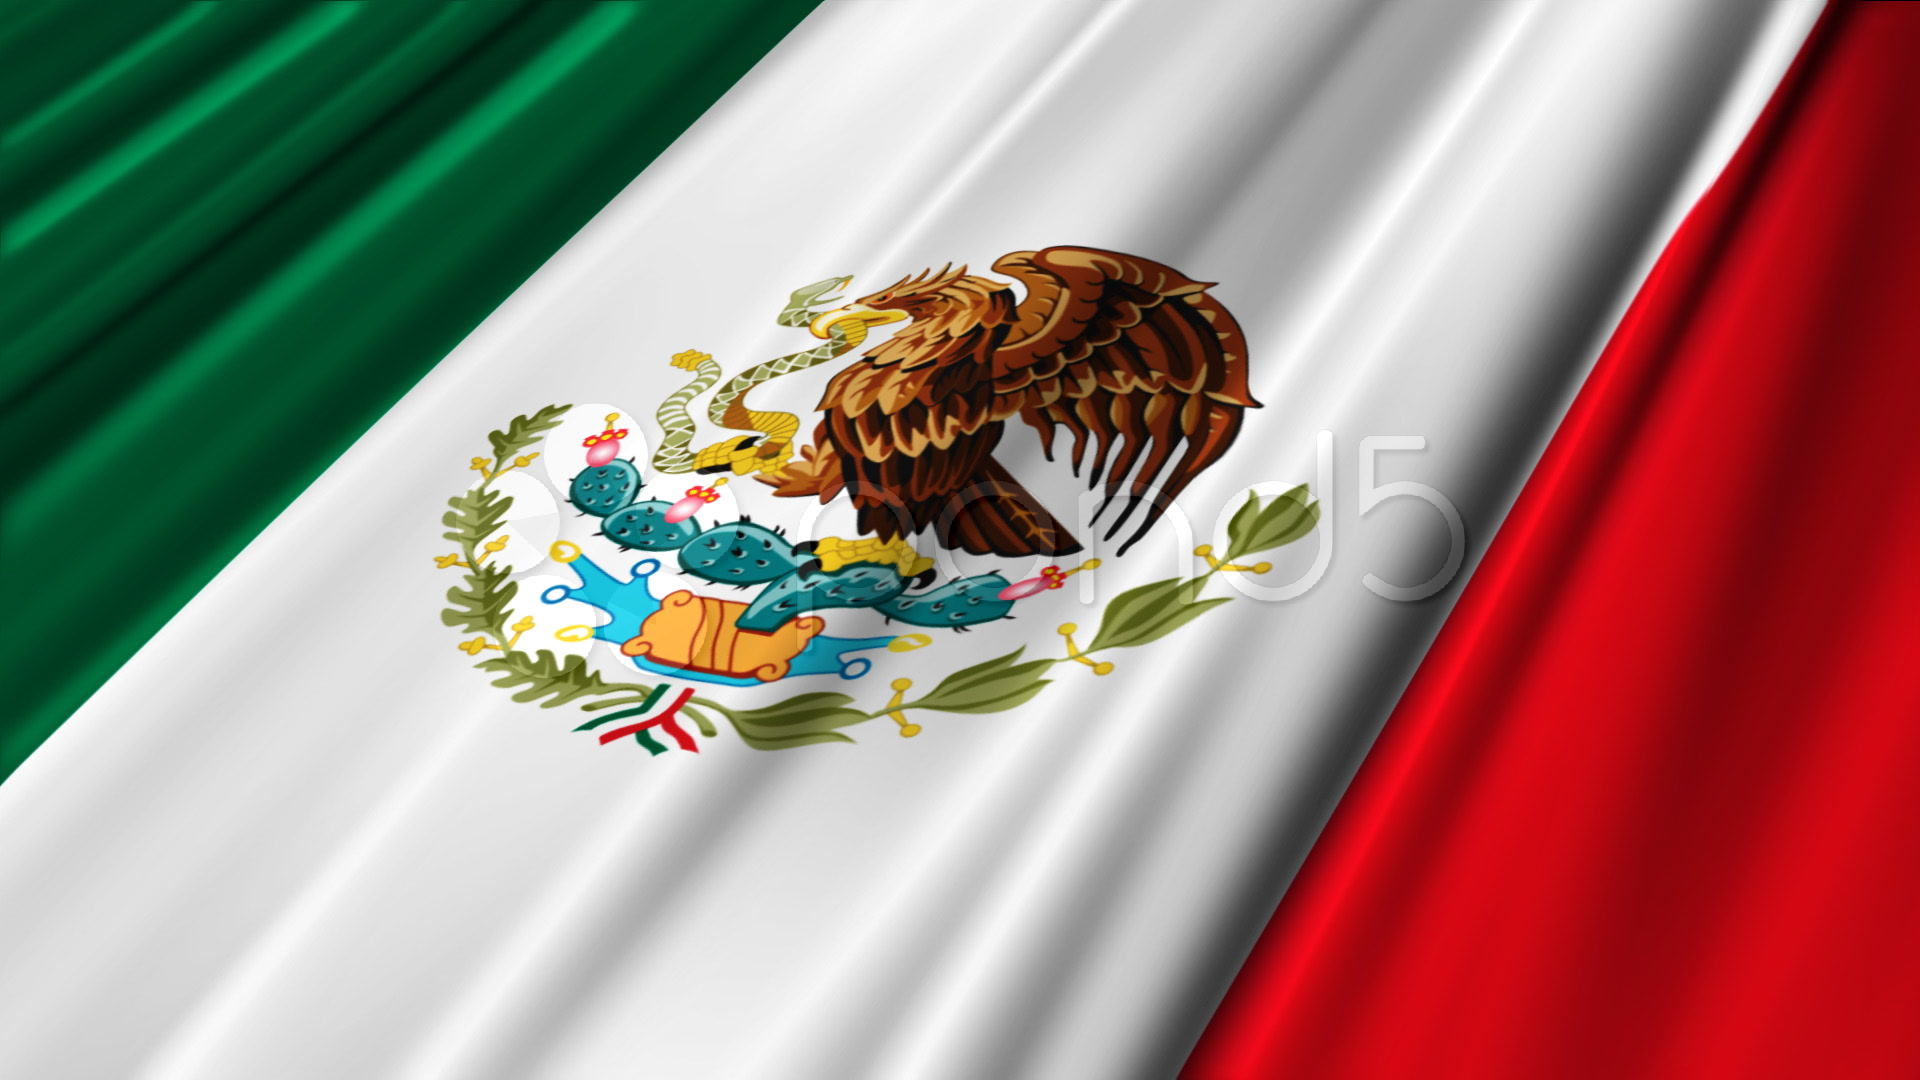 Mexico Flag Wallpaper Desktop - WallpaperSafari